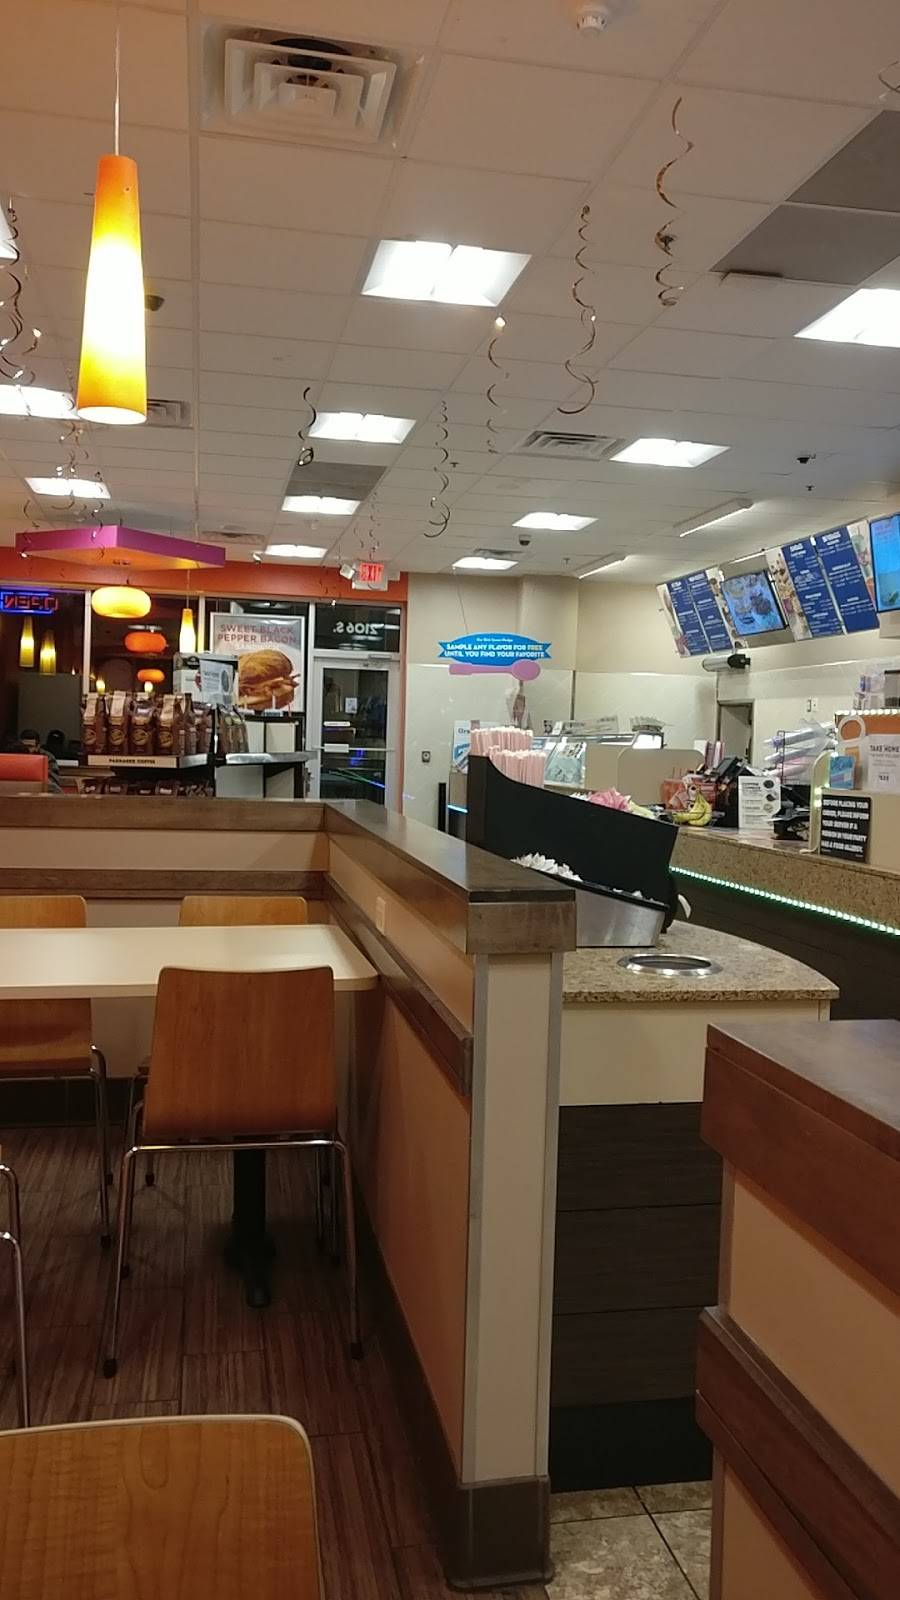 Dunkin Donuts   cafe   2106 S Arlington Heights Rd, Arlington Heights, IL 60005, USA   8477580001 OR +1 847-758-0001